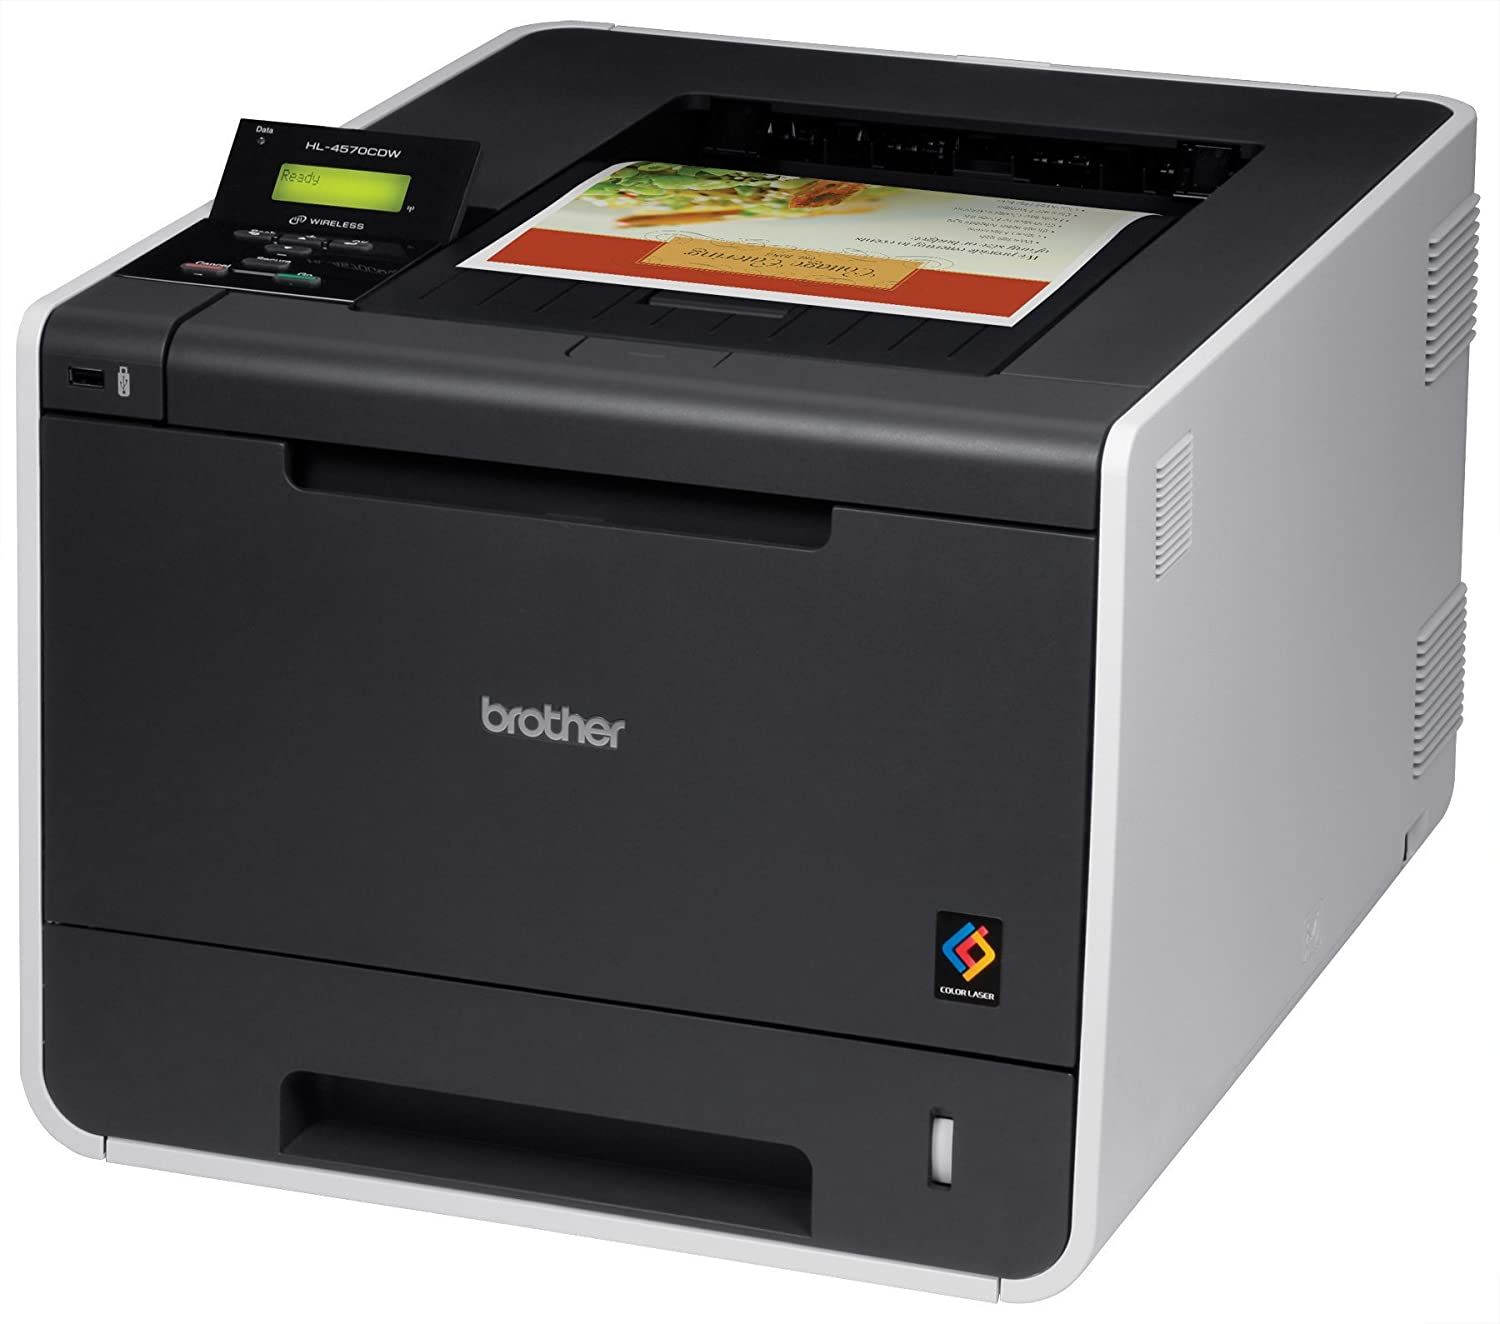 Amazon.com: Brother HL4570CDW Color Laser Printer with Wireless ...